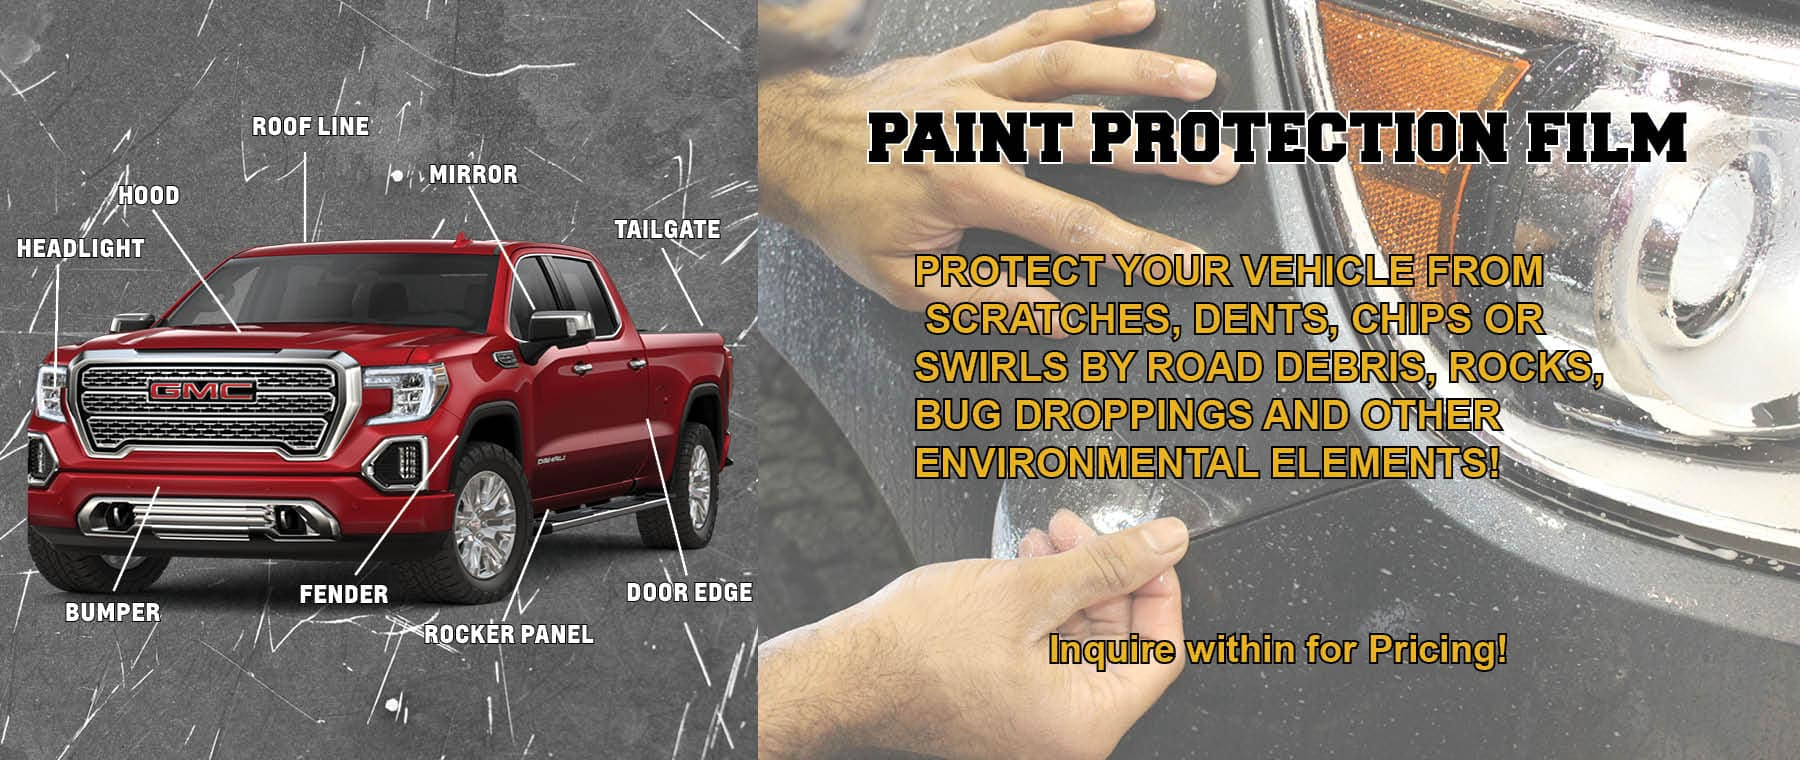 Paint Protection Slide 2020